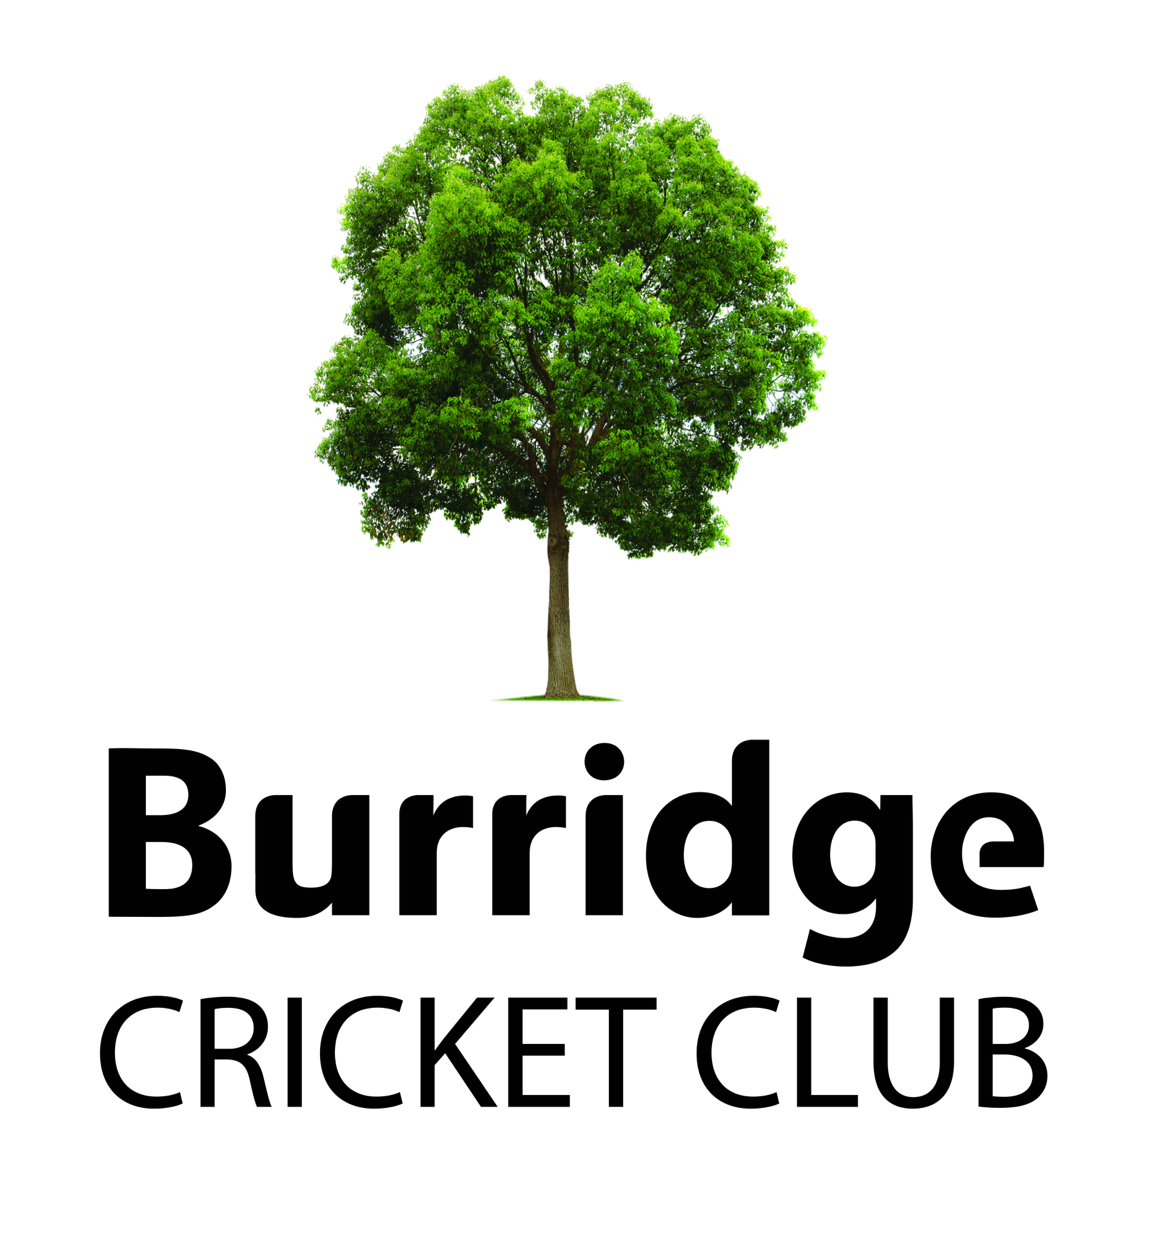 Burridge Cricket Club